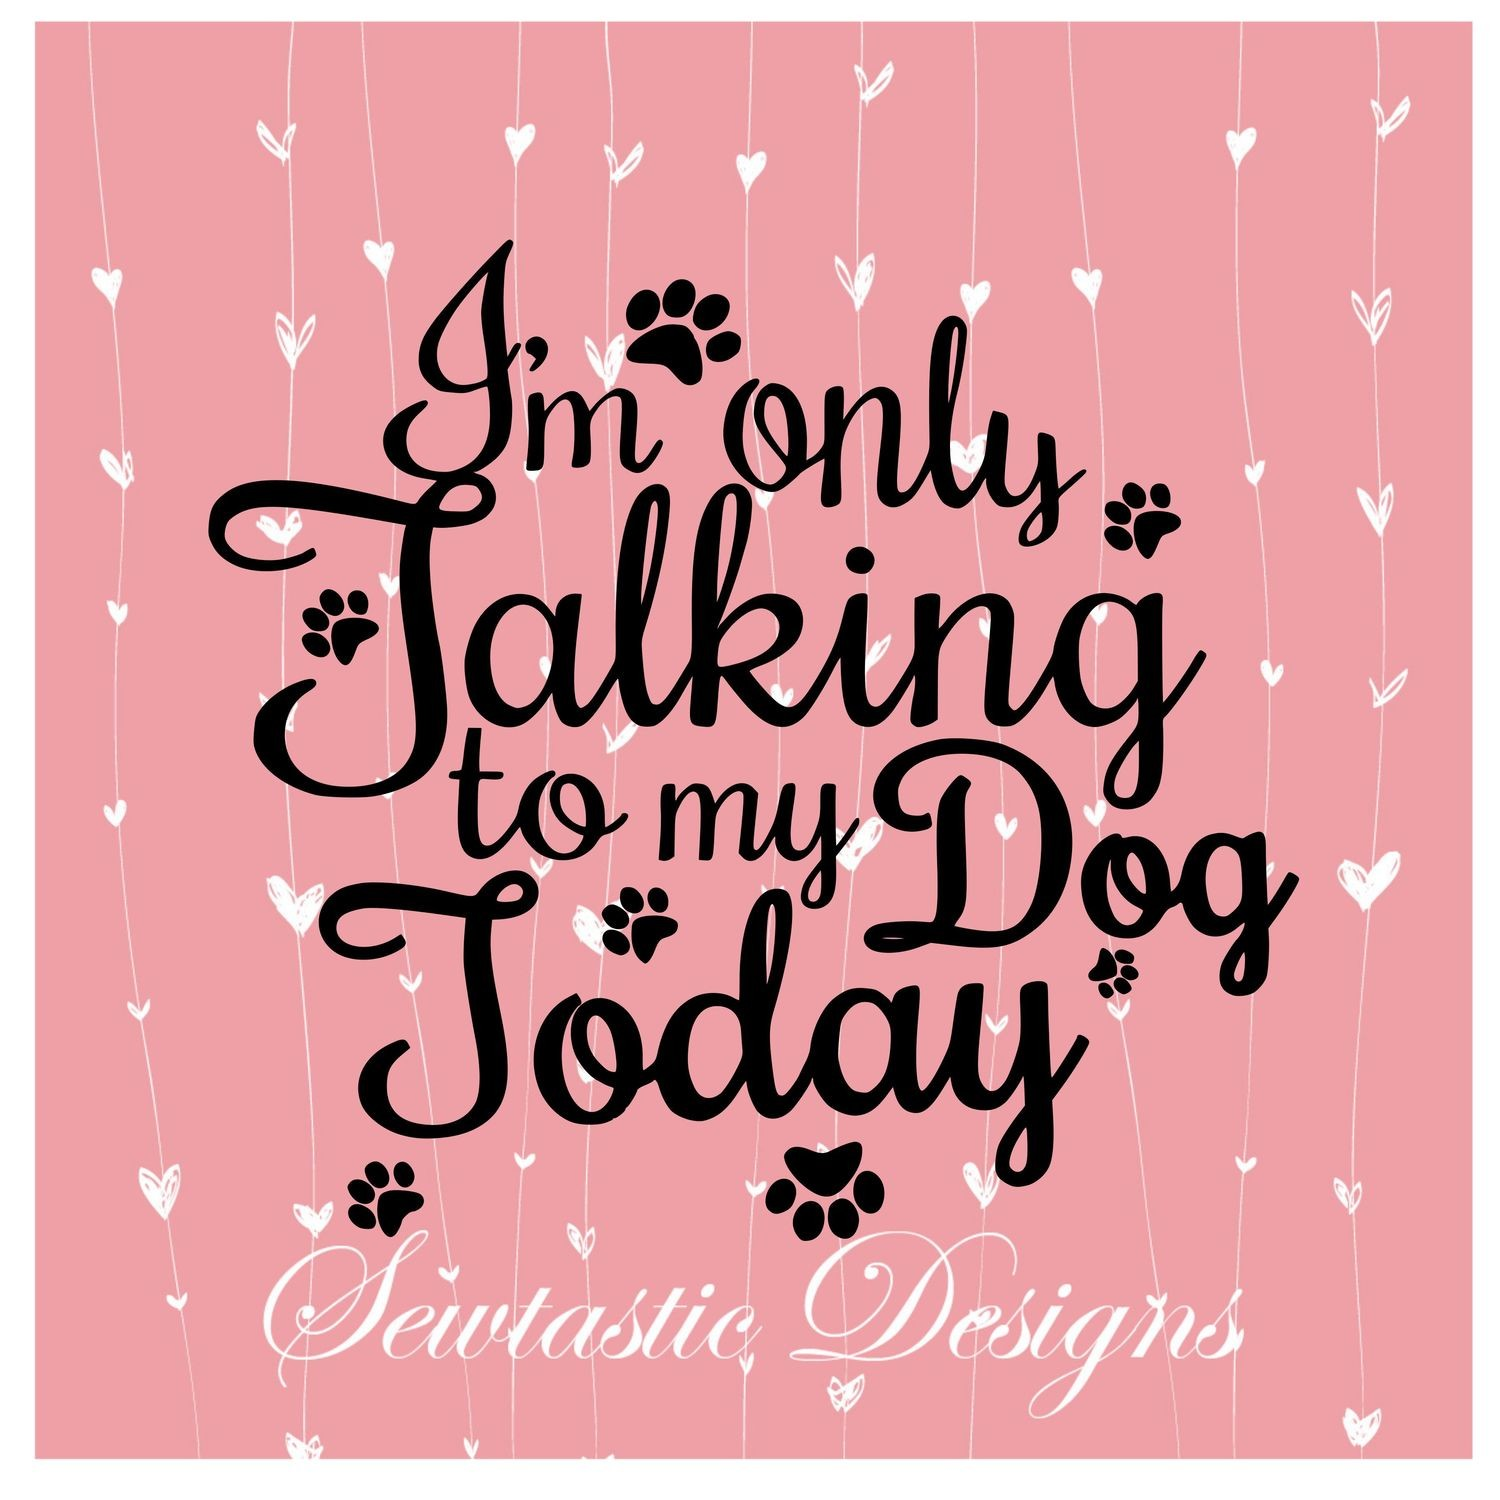 I'm Only Talking to My Dog Today SVG, Talking SVG, Dong SVG, Paw Print SVG,  Cut File, Iron On, Decal, Cricut, Silhouette, ScanNCut & Many More